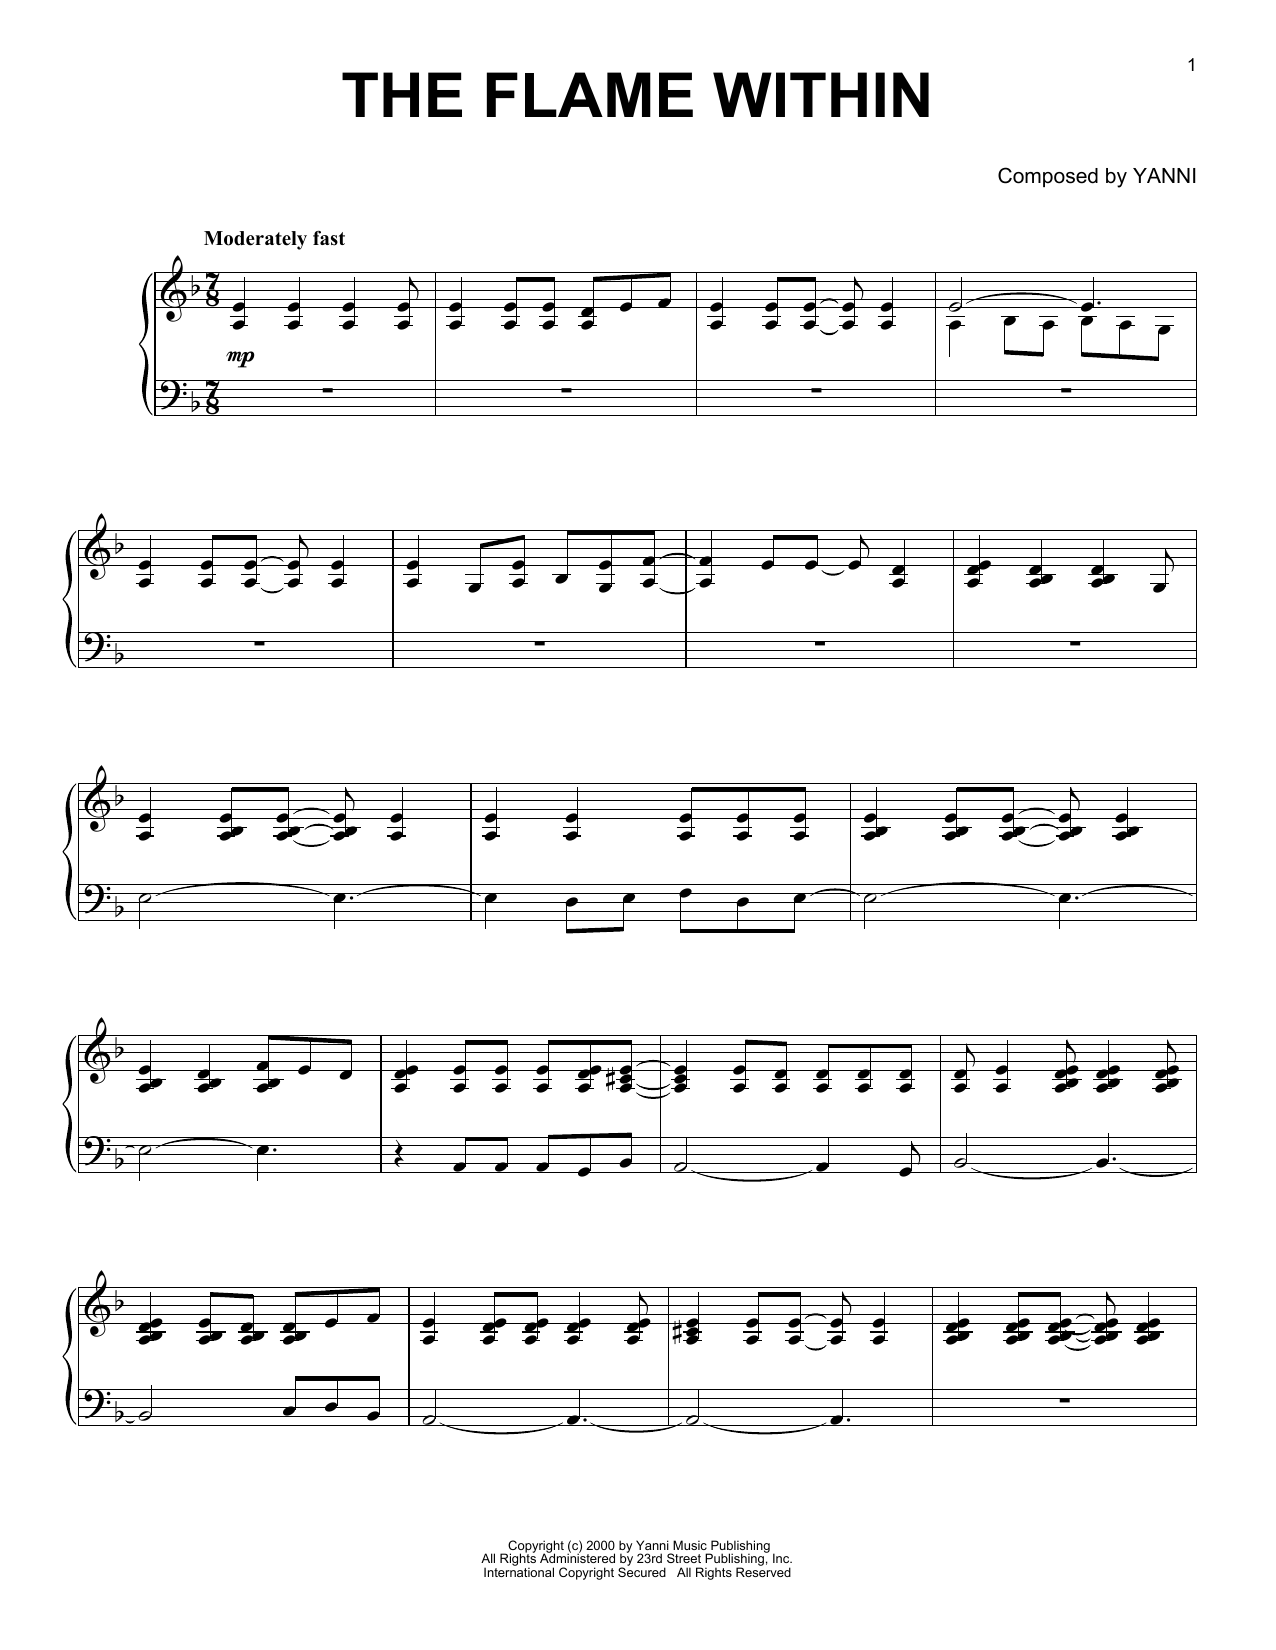 Yanni The Flame Within sheet music notes and chords. Download Printable PDF.